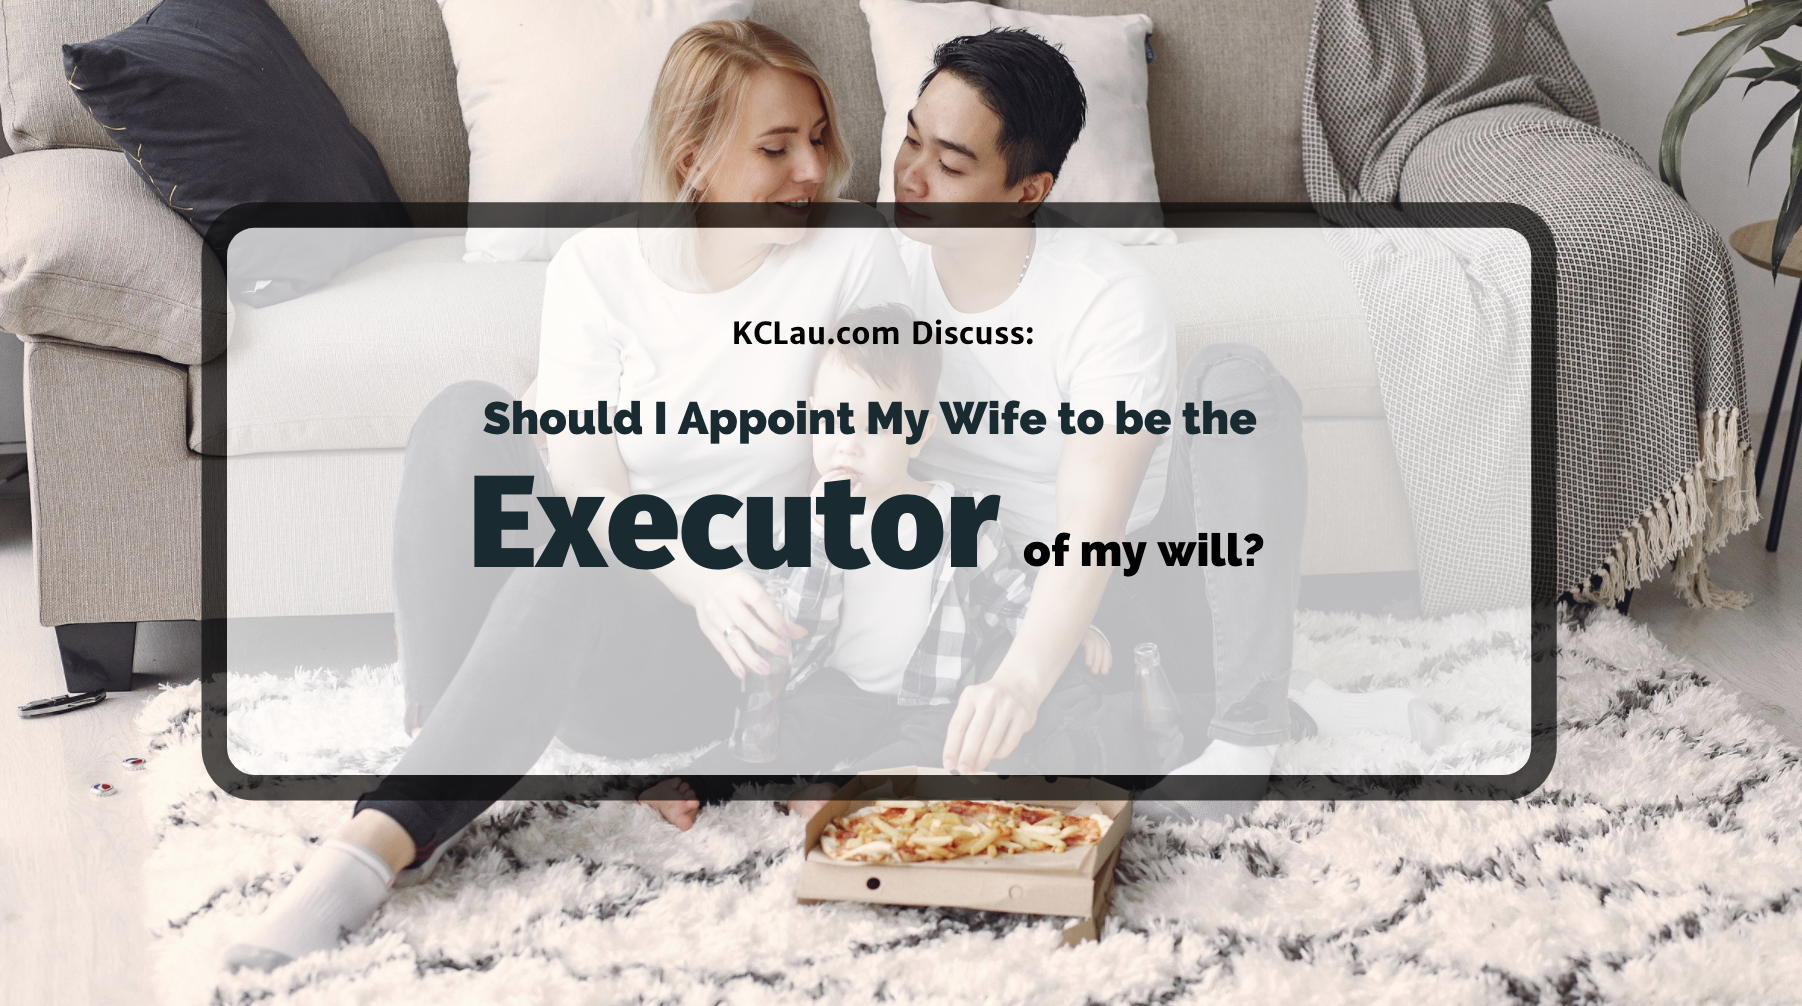 Should I Appoint My Wife as the Executor of My Will?